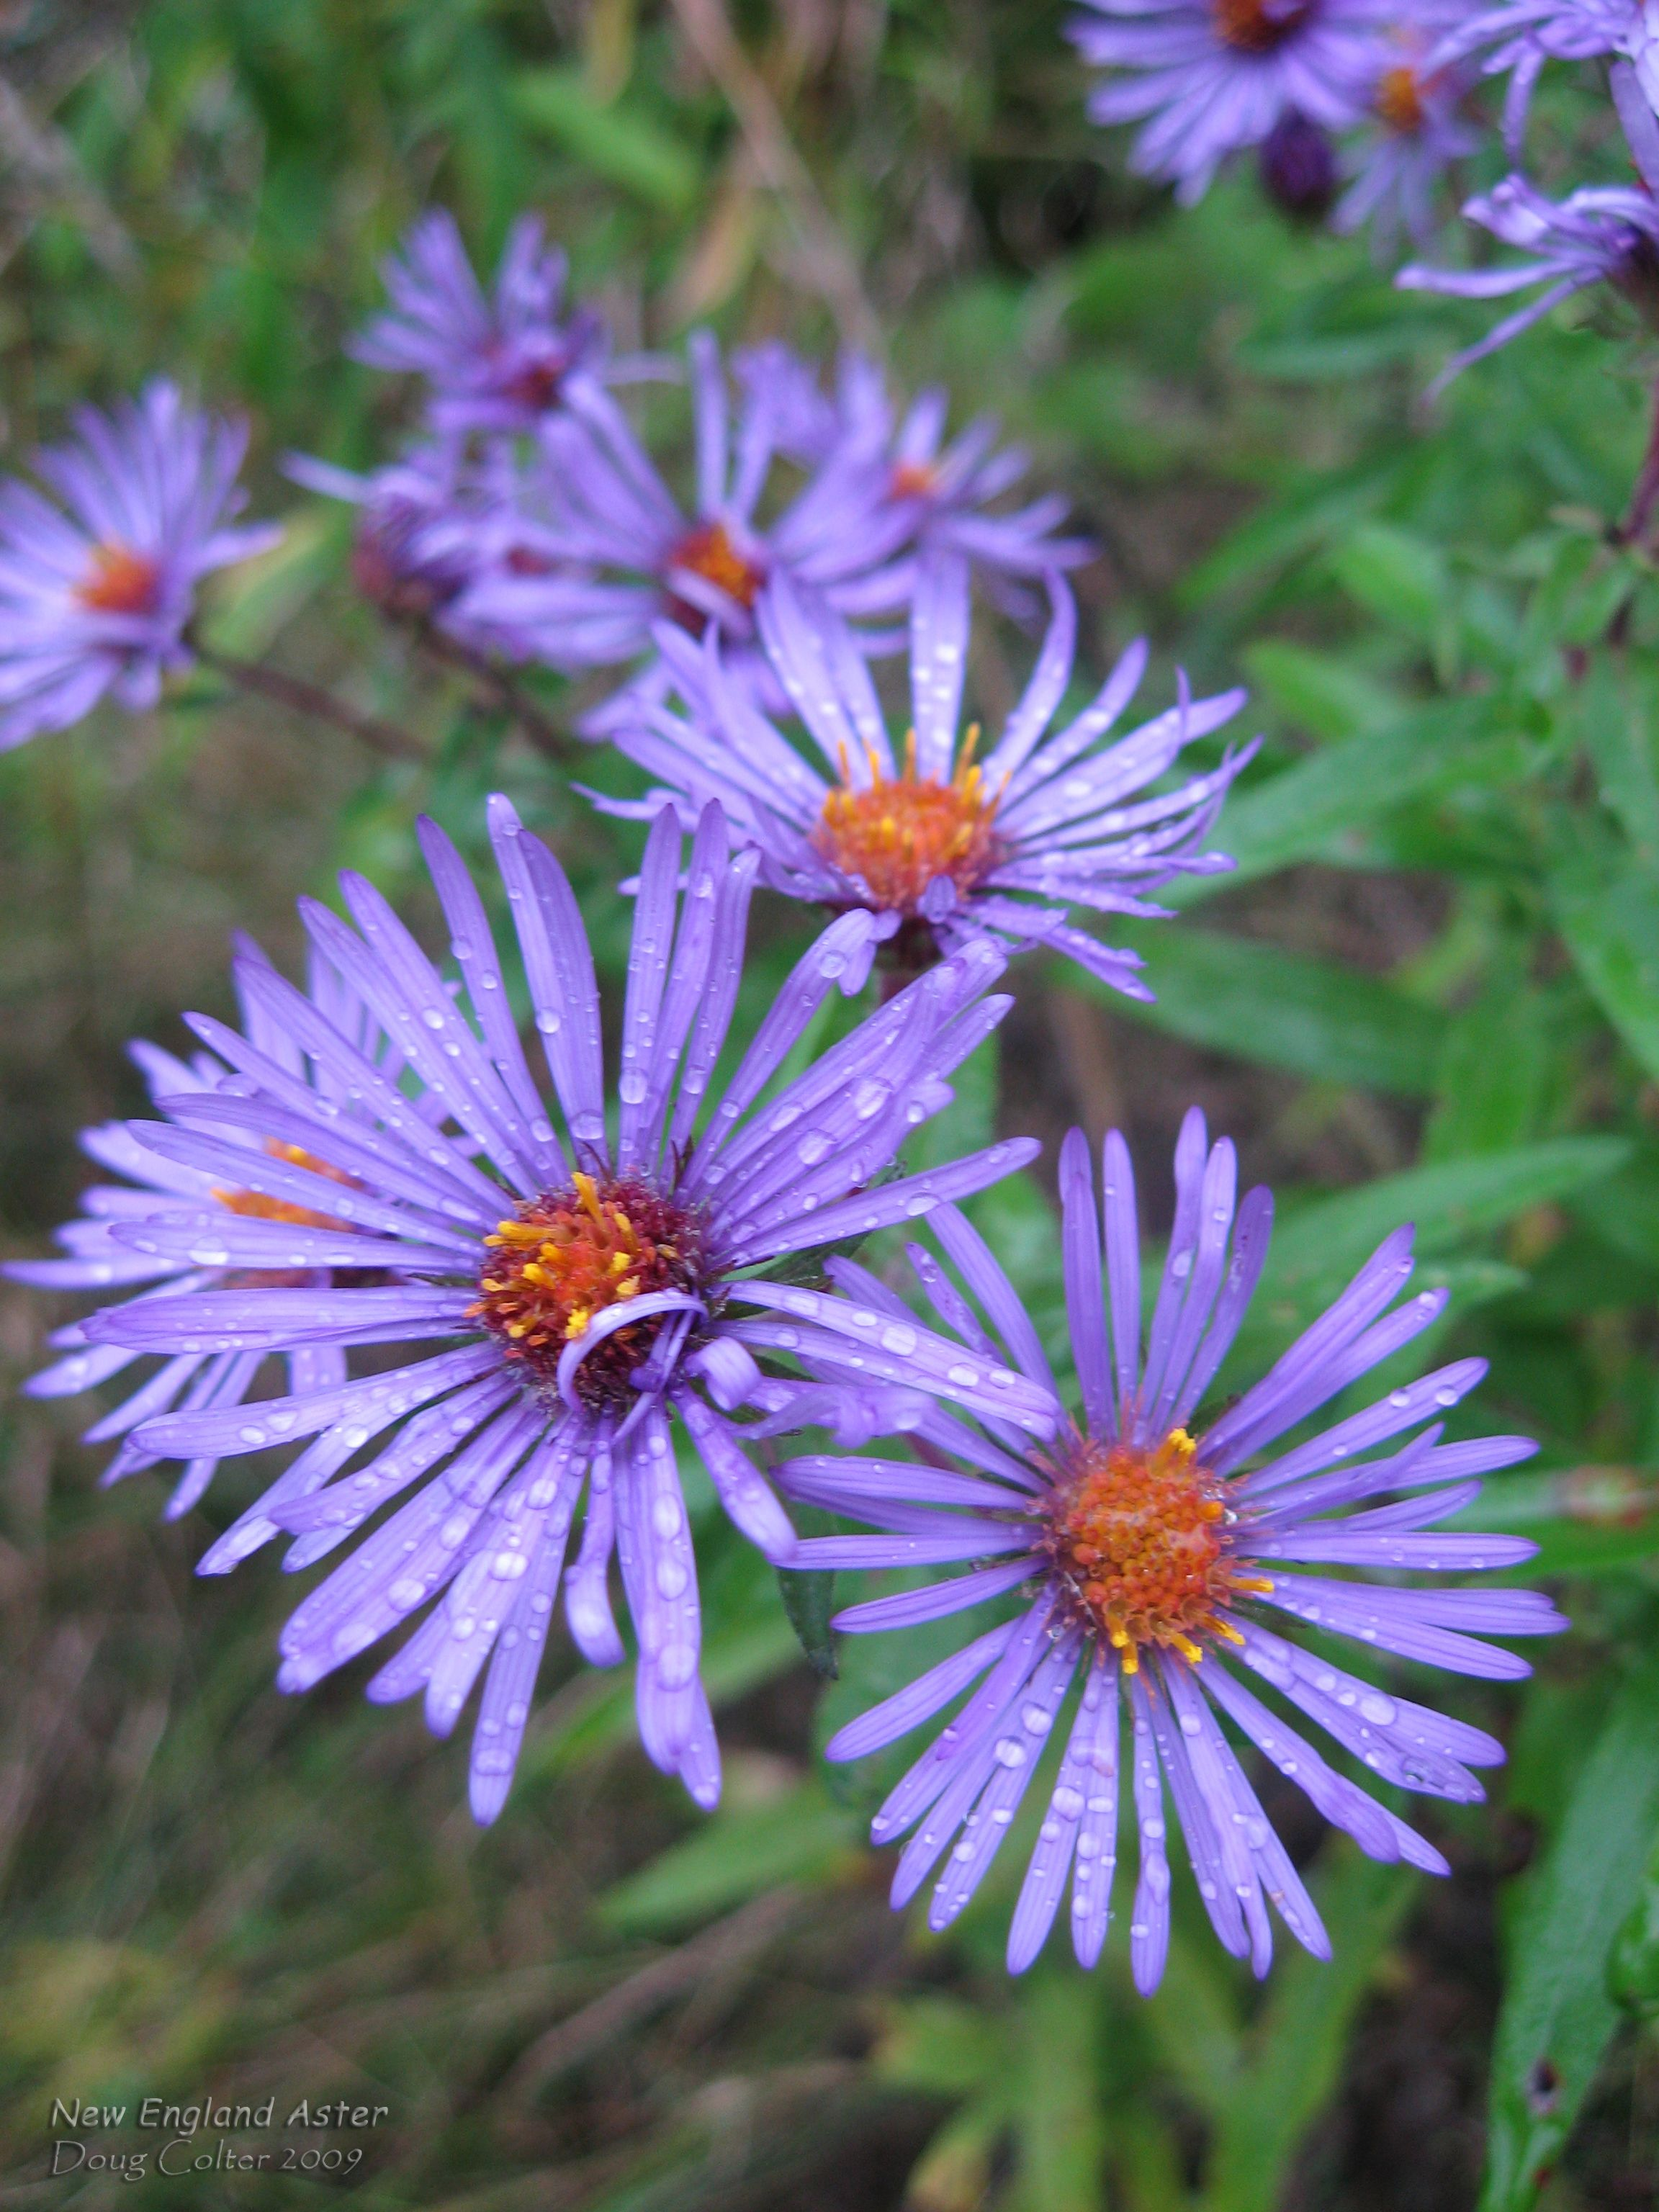 New England Aster Aster Novae Angliae Family Aster Asteraceae Habitat Damp Thickets And Meadows Height Flower Guide Wild Plants Plant Photography